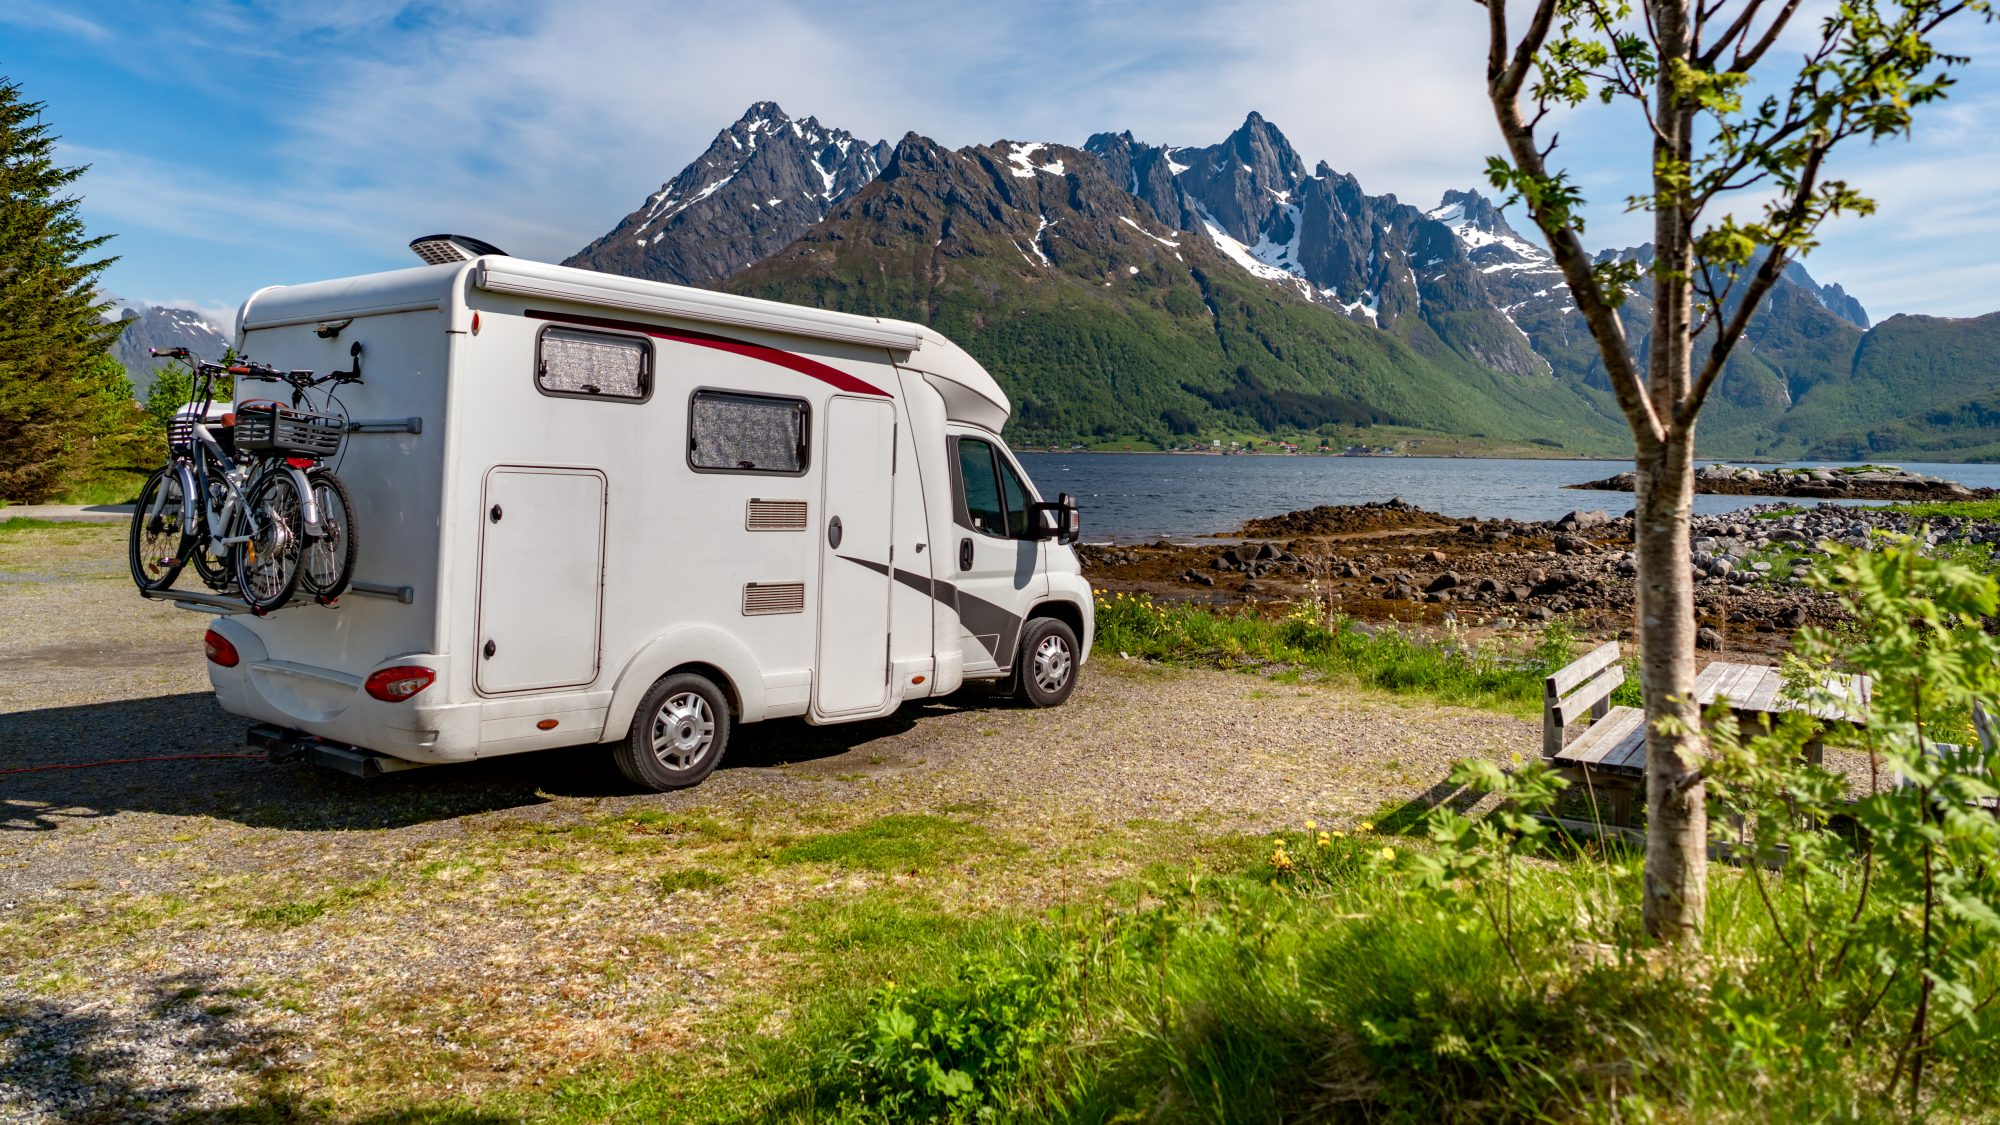 RV parked near a scenic lake and mountains